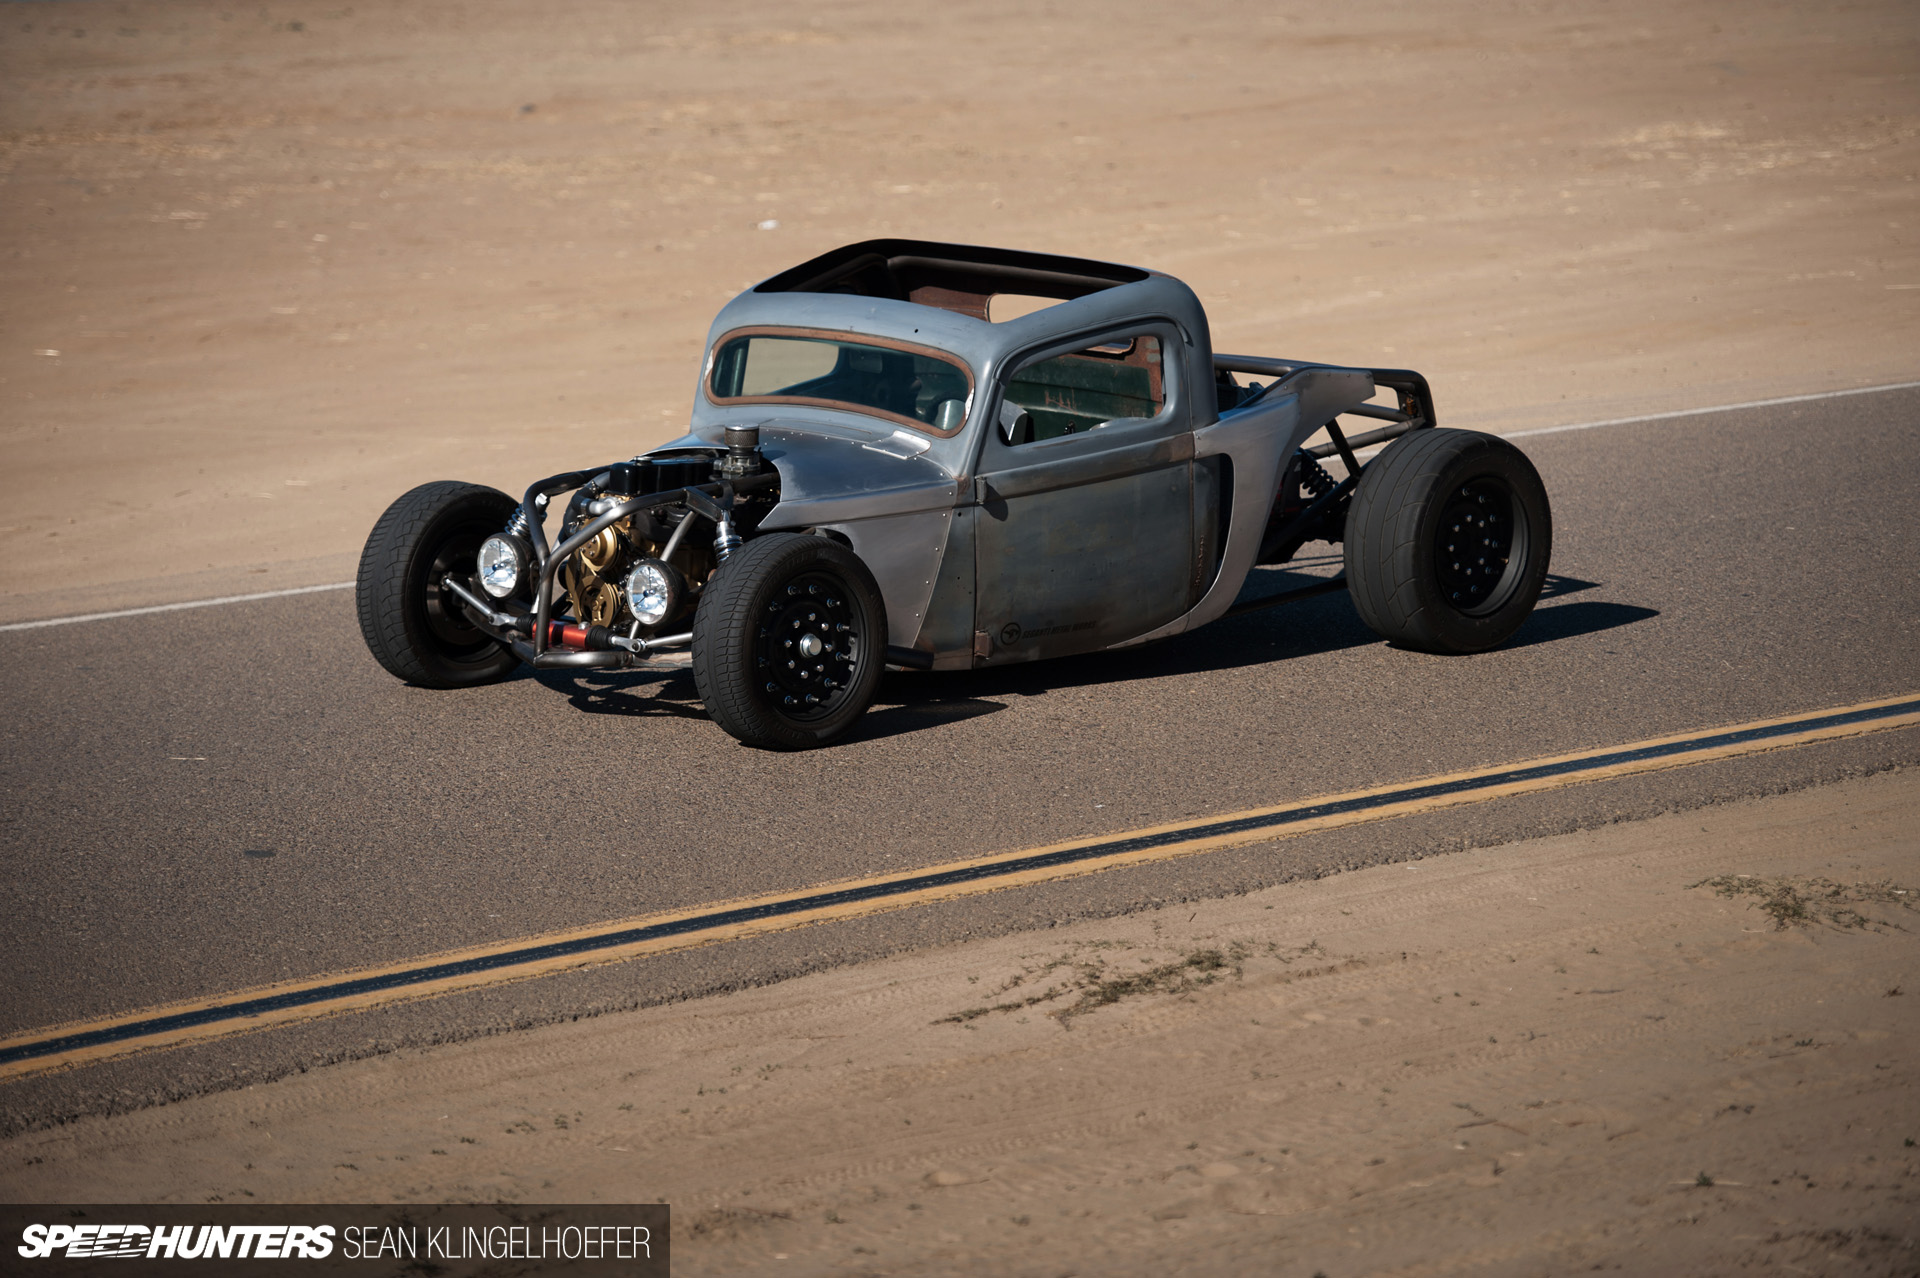 One Hot Rod, So Many Styles - Speedhunters